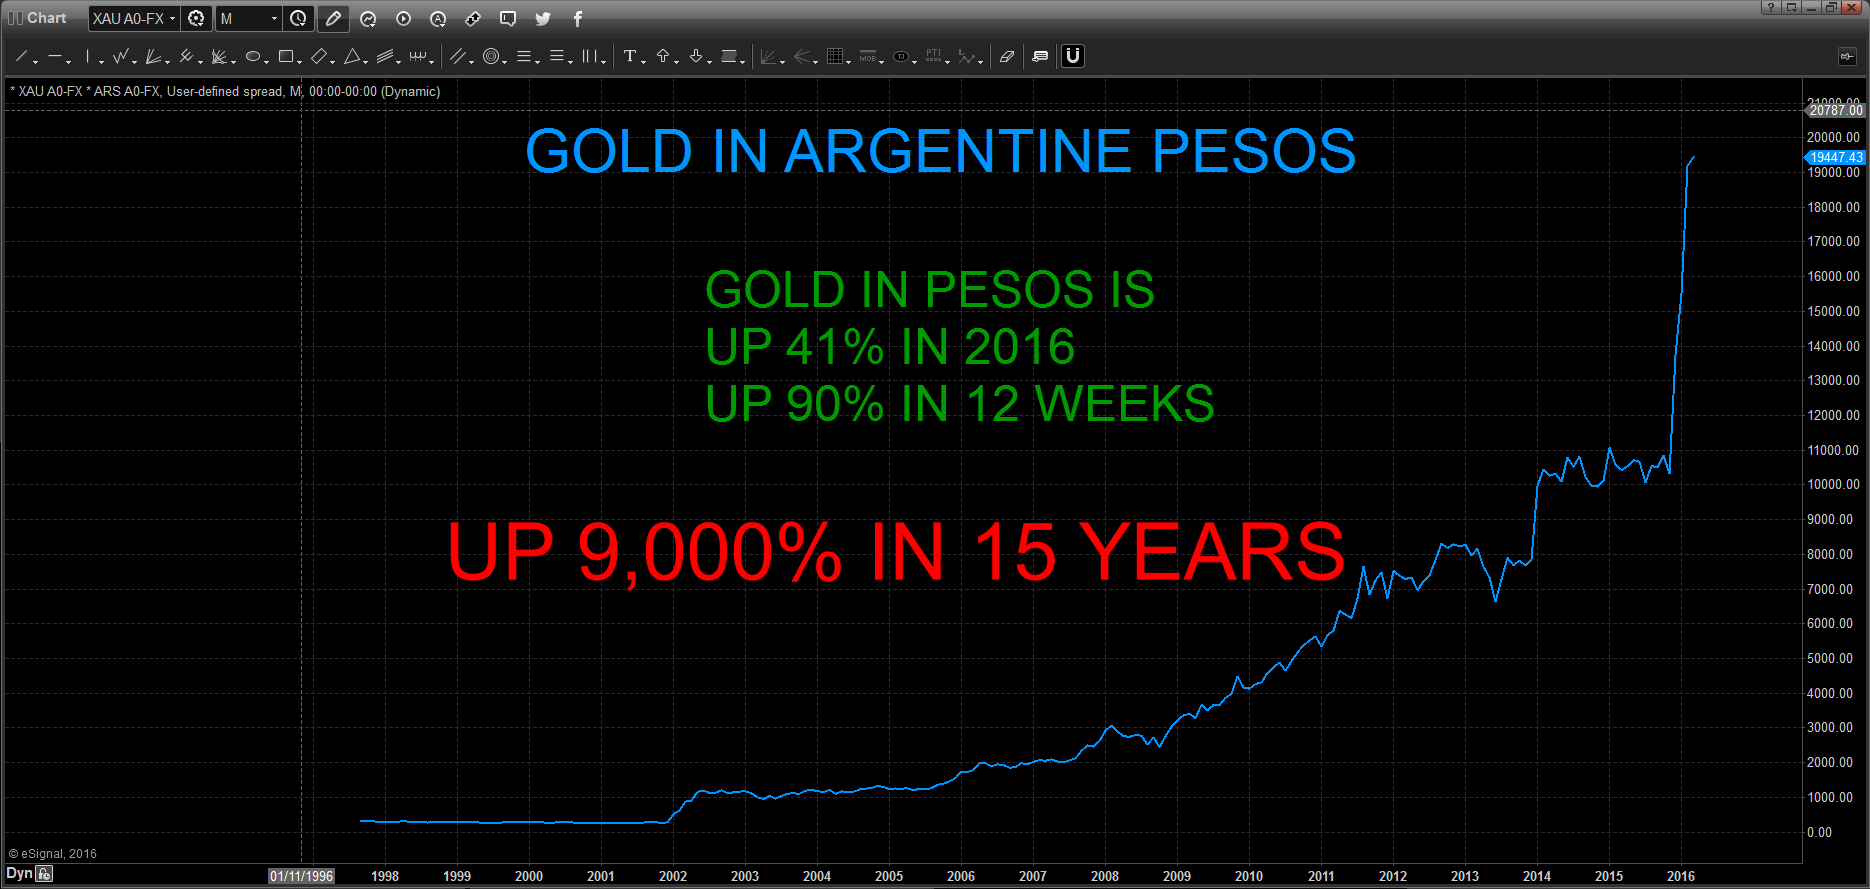 Gold in Argentine Pesos